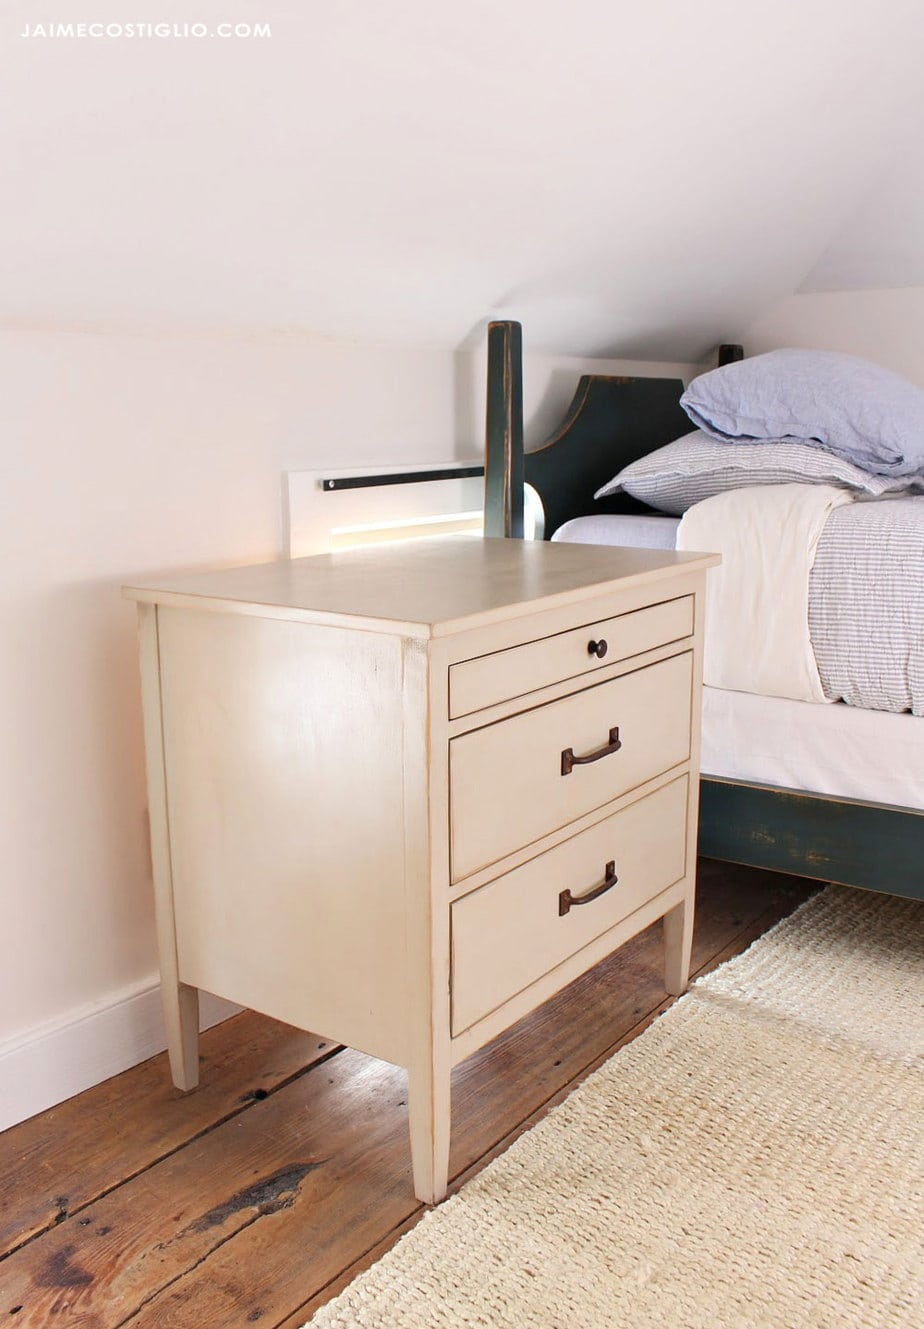 side view bedside table